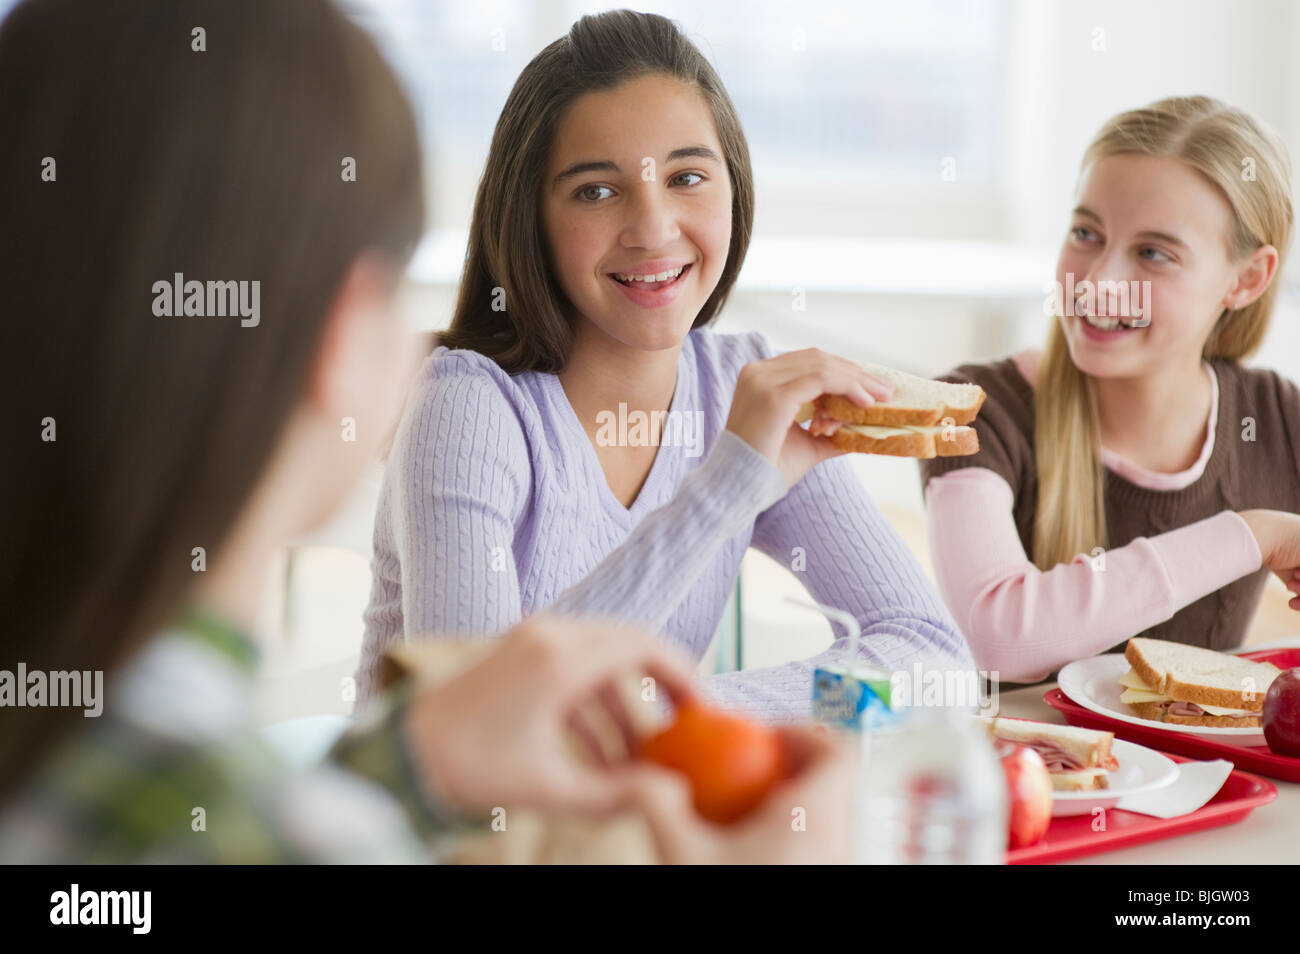 Friends eating in cafeteria - Stock Image